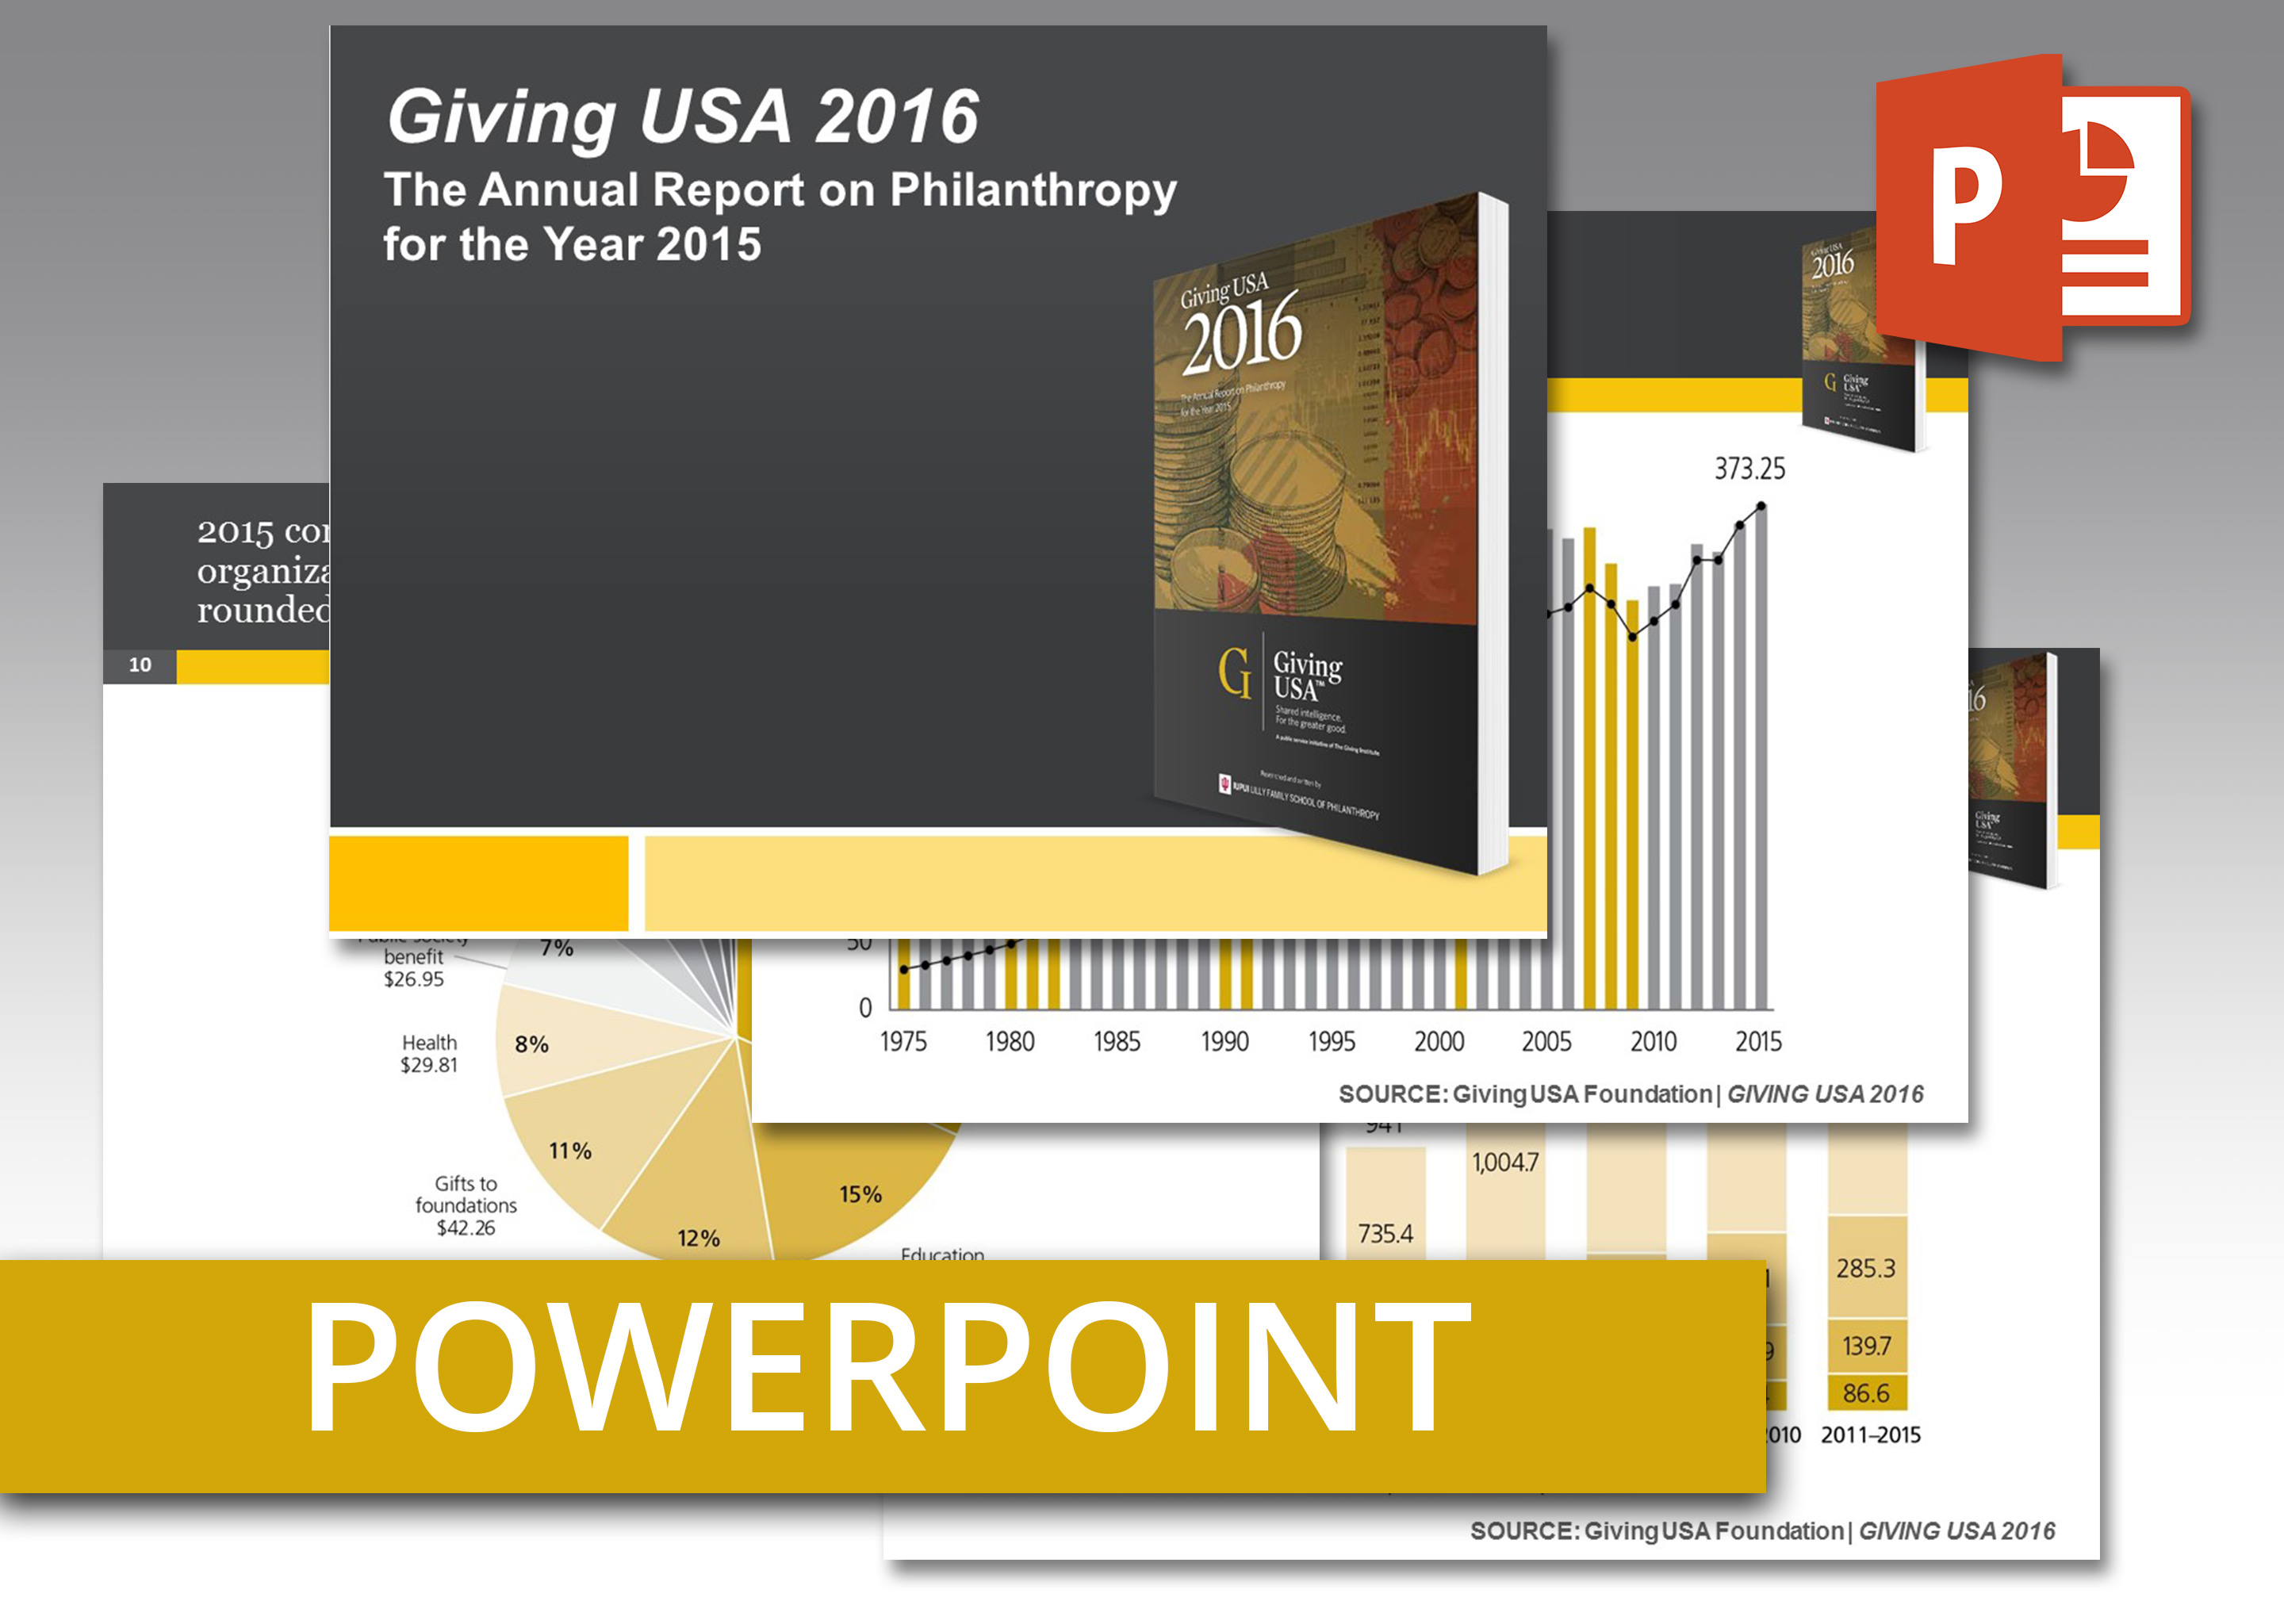 Usdgus  Surprising Giving Usa  Powerpoint An Easytouse Presentation Of Report  With Licious Giving Usa  Powerpoint An Easytouse Presentation Of Report Findings Including Talking Points With Comely Youtube Video On Powerpoint  Also Diabetes Presentation Powerpoint In Addition Download Free Template For Powerpoint And Diagram Template Powerpoint As Well As How To Open Powerpoint Presentation Additionally Powerpoint Poster Templates A From Givingusaorg With Usdgus  Licious Giving Usa  Powerpoint An Easytouse Presentation Of Report  With Comely Giving Usa  Powerpoint An Easytouse Presentation Of Report Findings Including Talking Points And Surprising Youtube Video On Powerpoint  Also Diabetes Presentation Powerpoint In Addition Download Free Template For Powerpoint From Givingusaorg